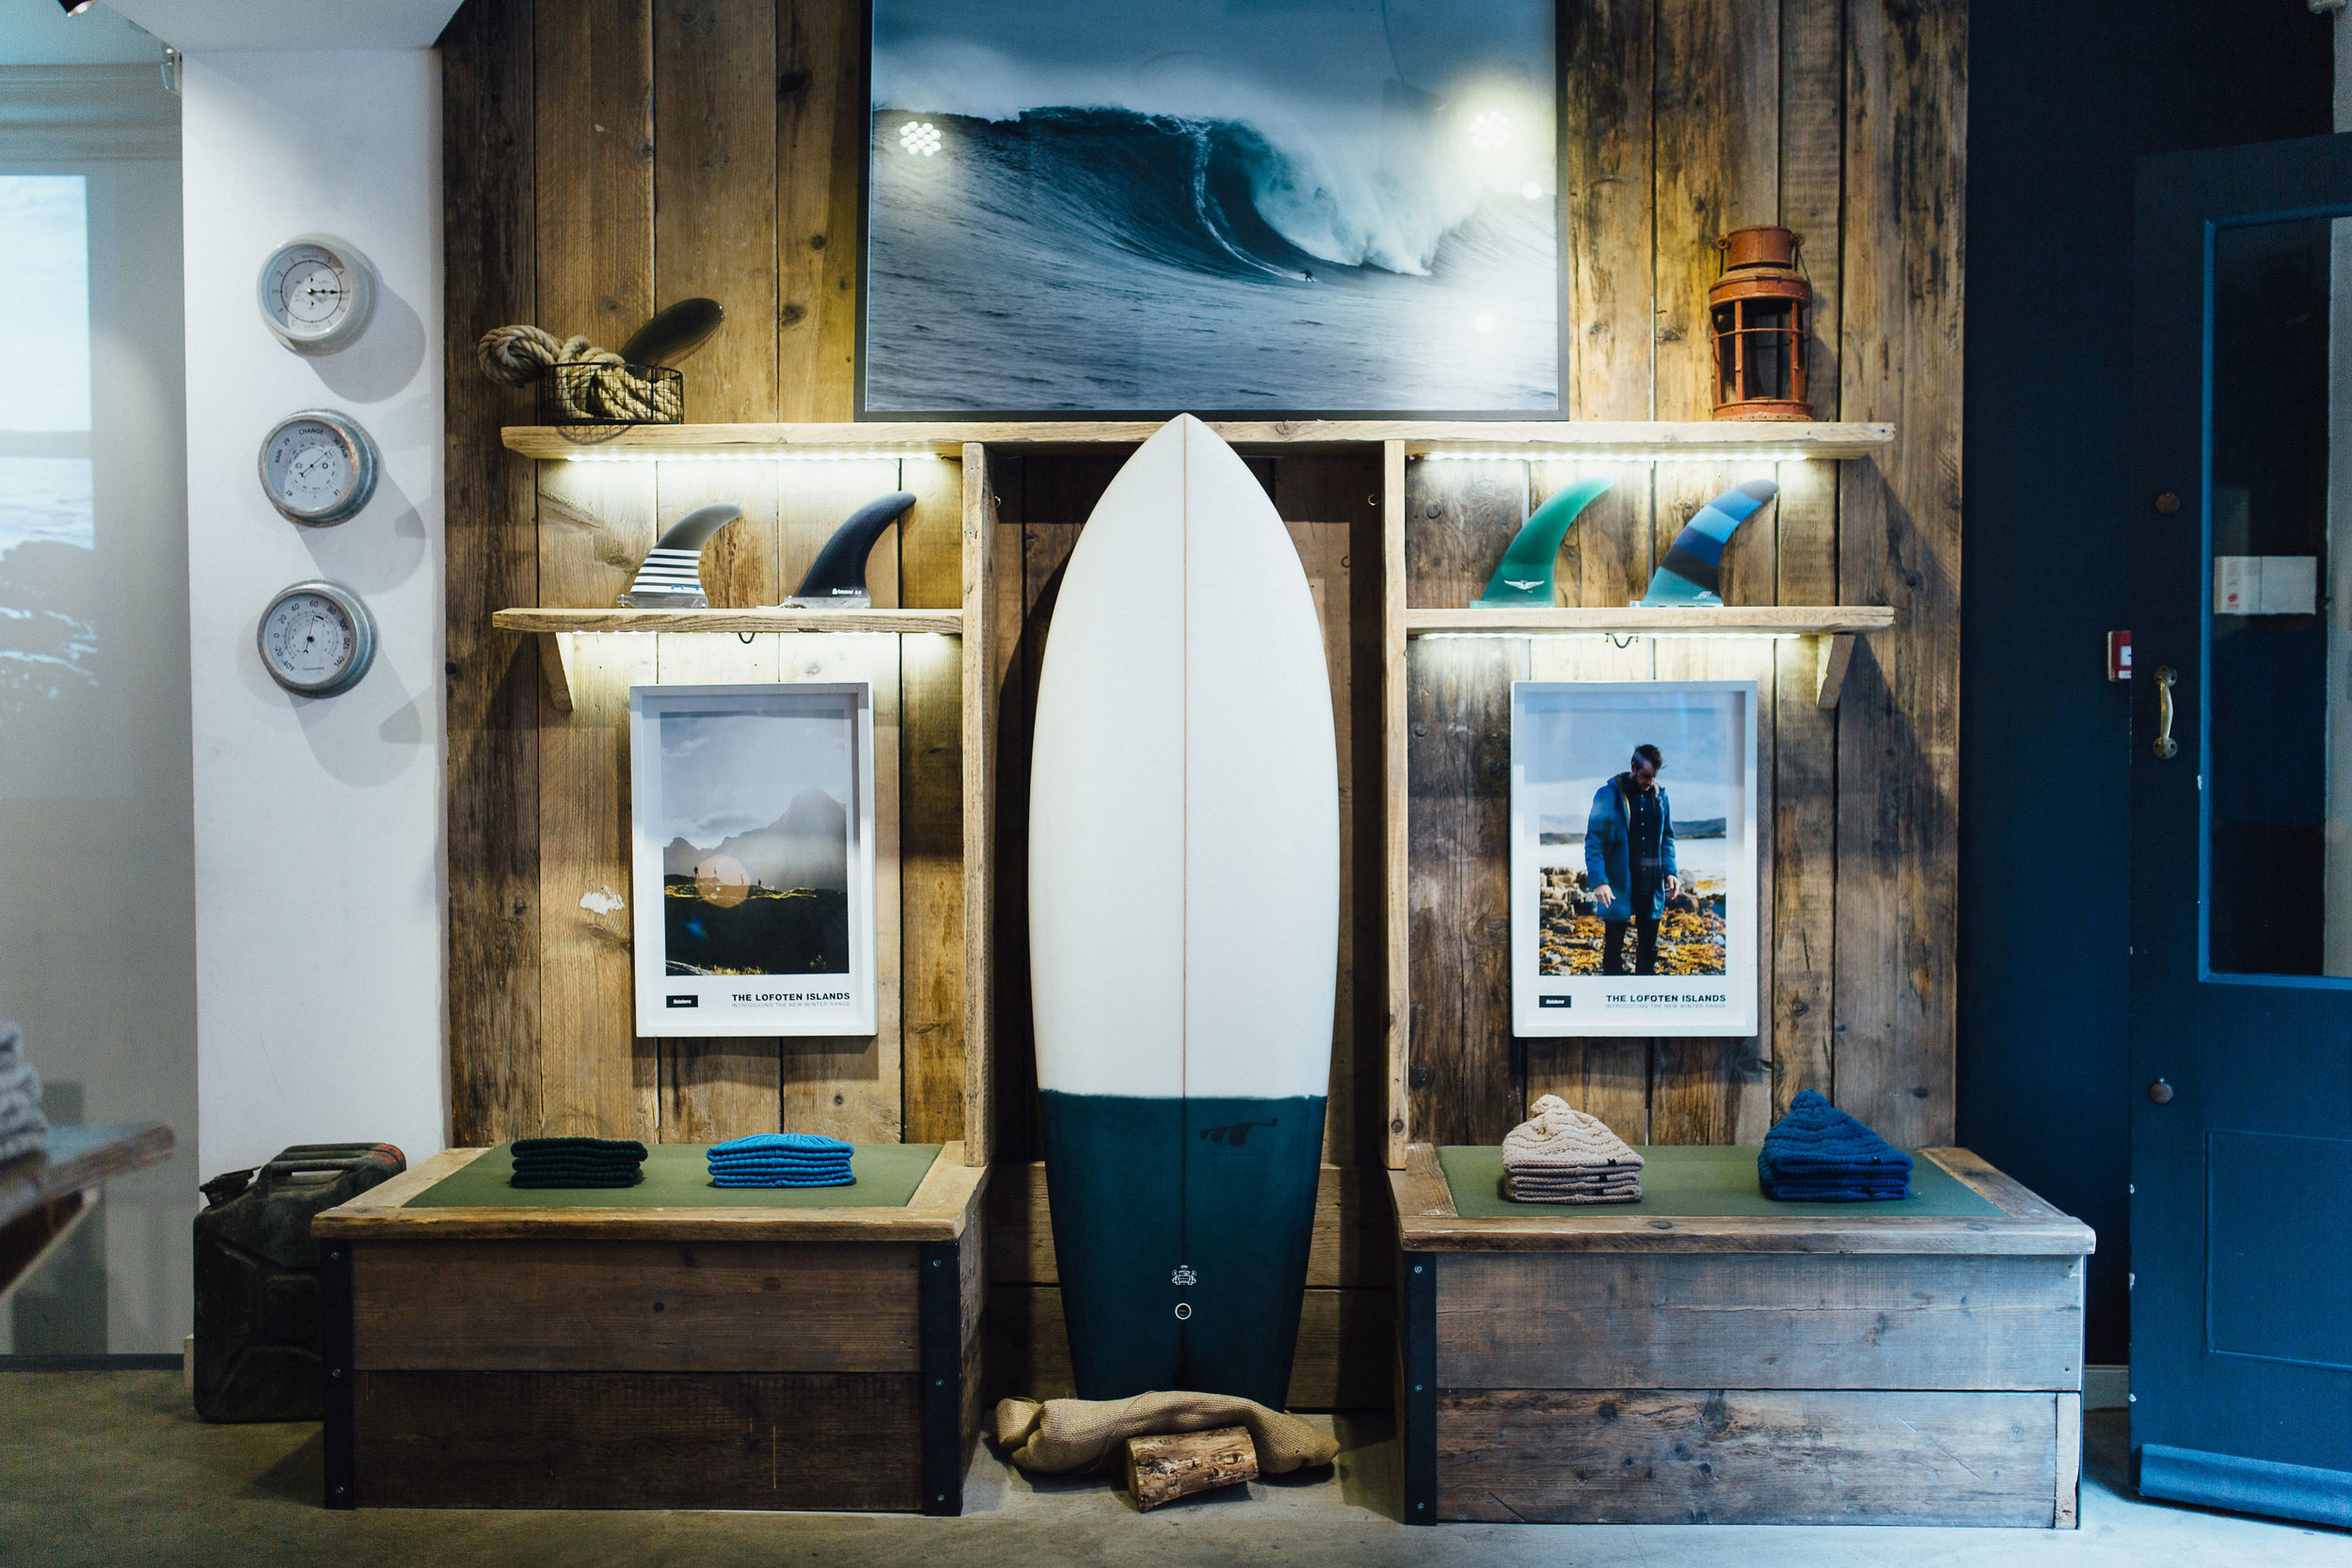 Jonathan-Simpson-Finisterre-London-Store-001.jpg